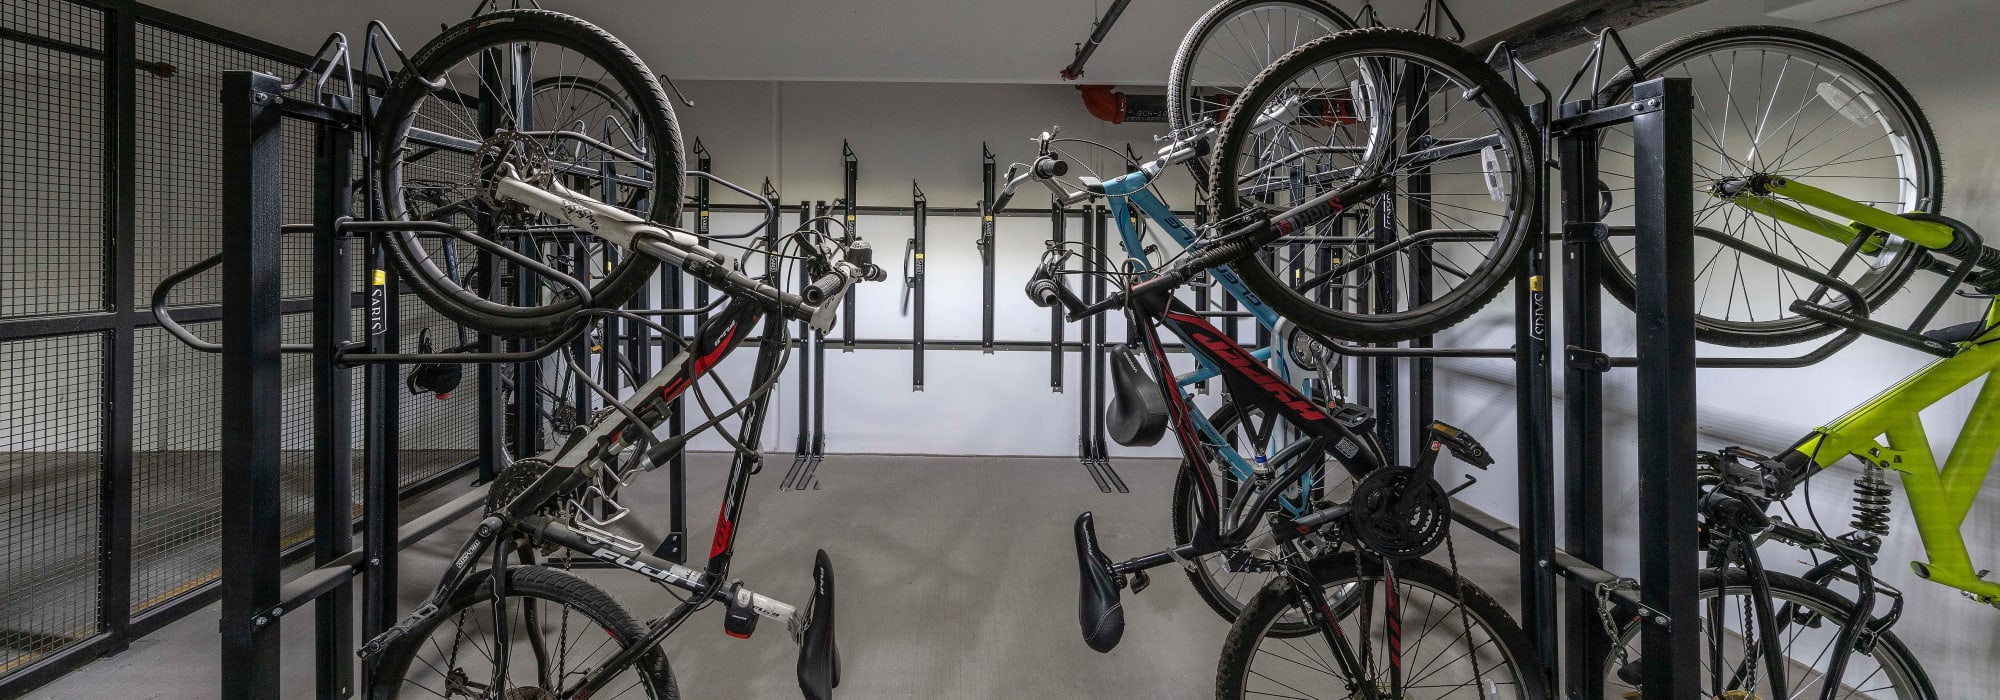 Secure bicycle storage at Carter in Scottsdale, Arizona